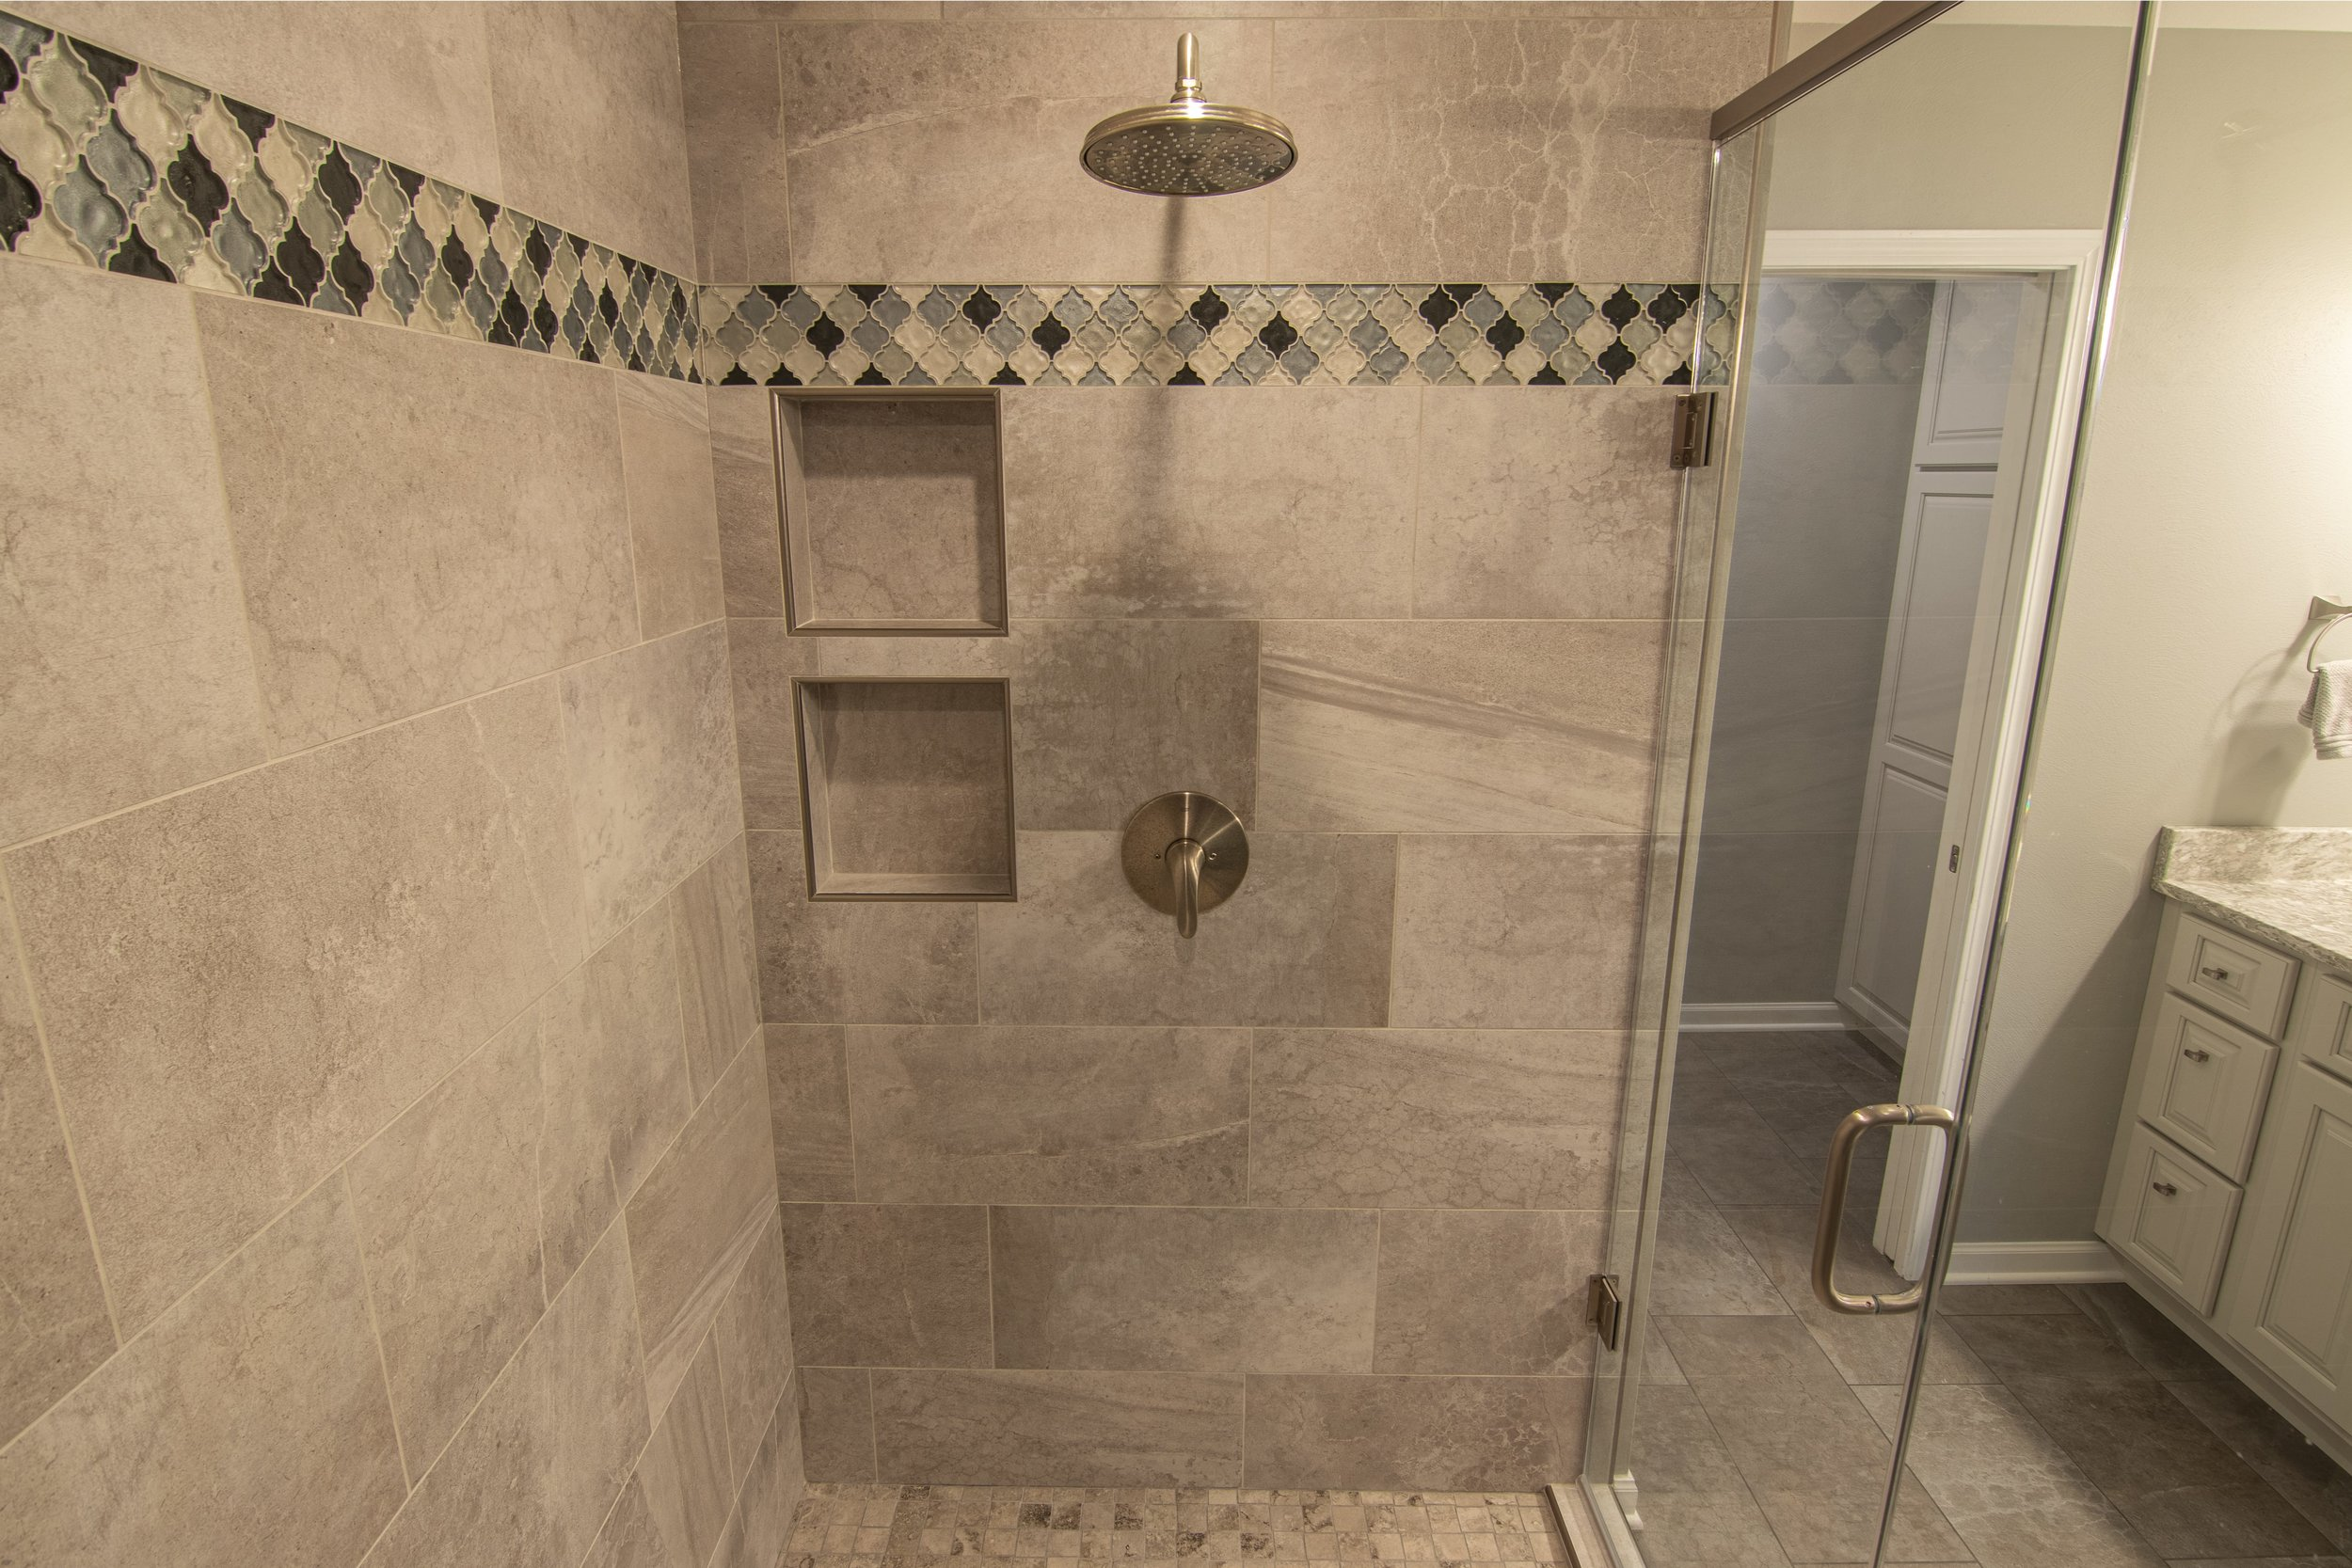 bathroom-remodel-renovate-monona-wi-5.jpg